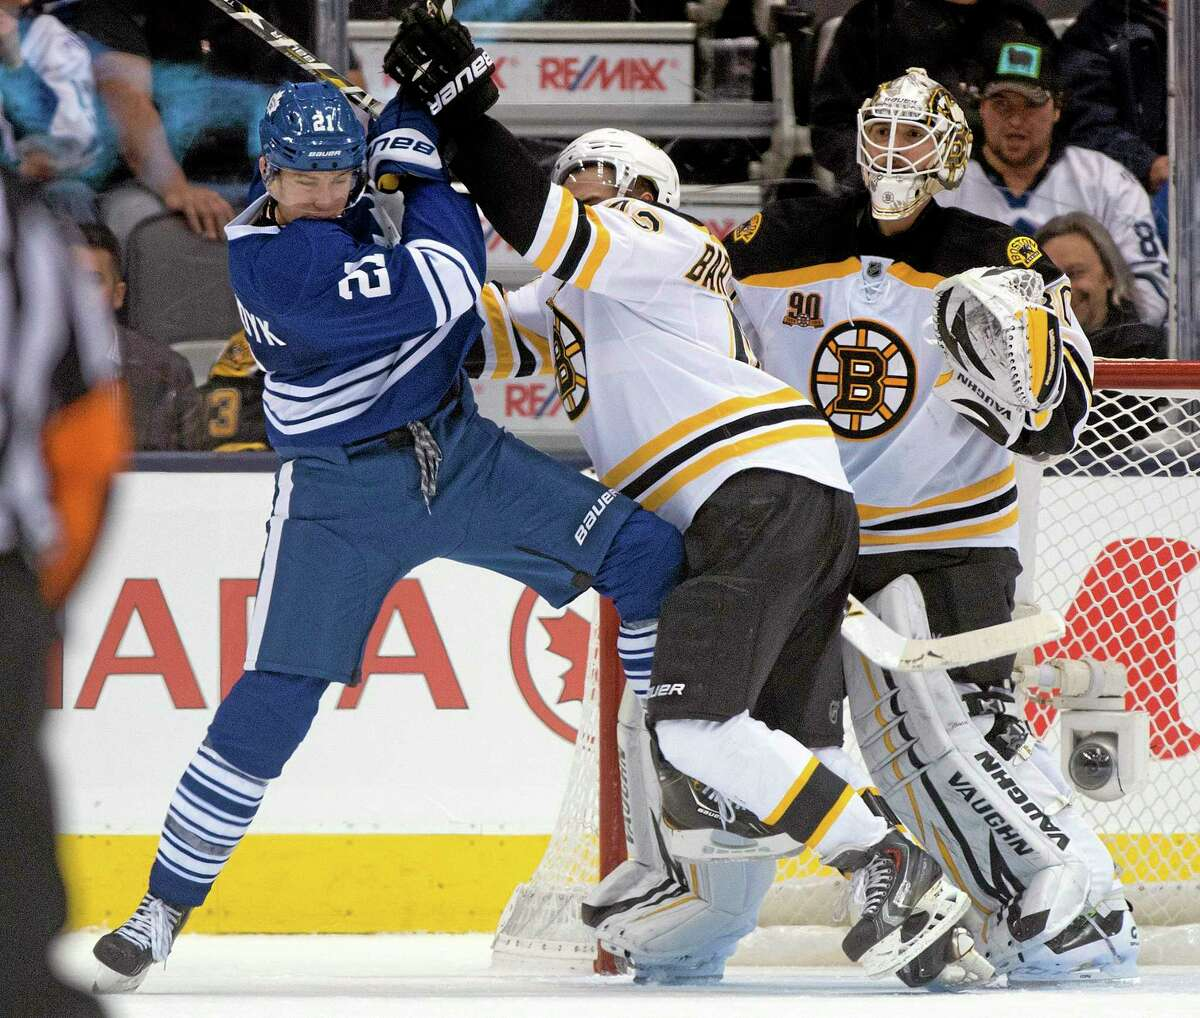 Boston Bruins goaltender Chad Johnson looks on as defenceman Matt Bartkowski tries to clear Toronto Maple Leafs left winger James van Riemsdyk (21) during the third period of an NHL hockey game in Toronto on Sunday, Dec. 8, 2013. (AP Photo/The Canadian Press, Frank Gunn)